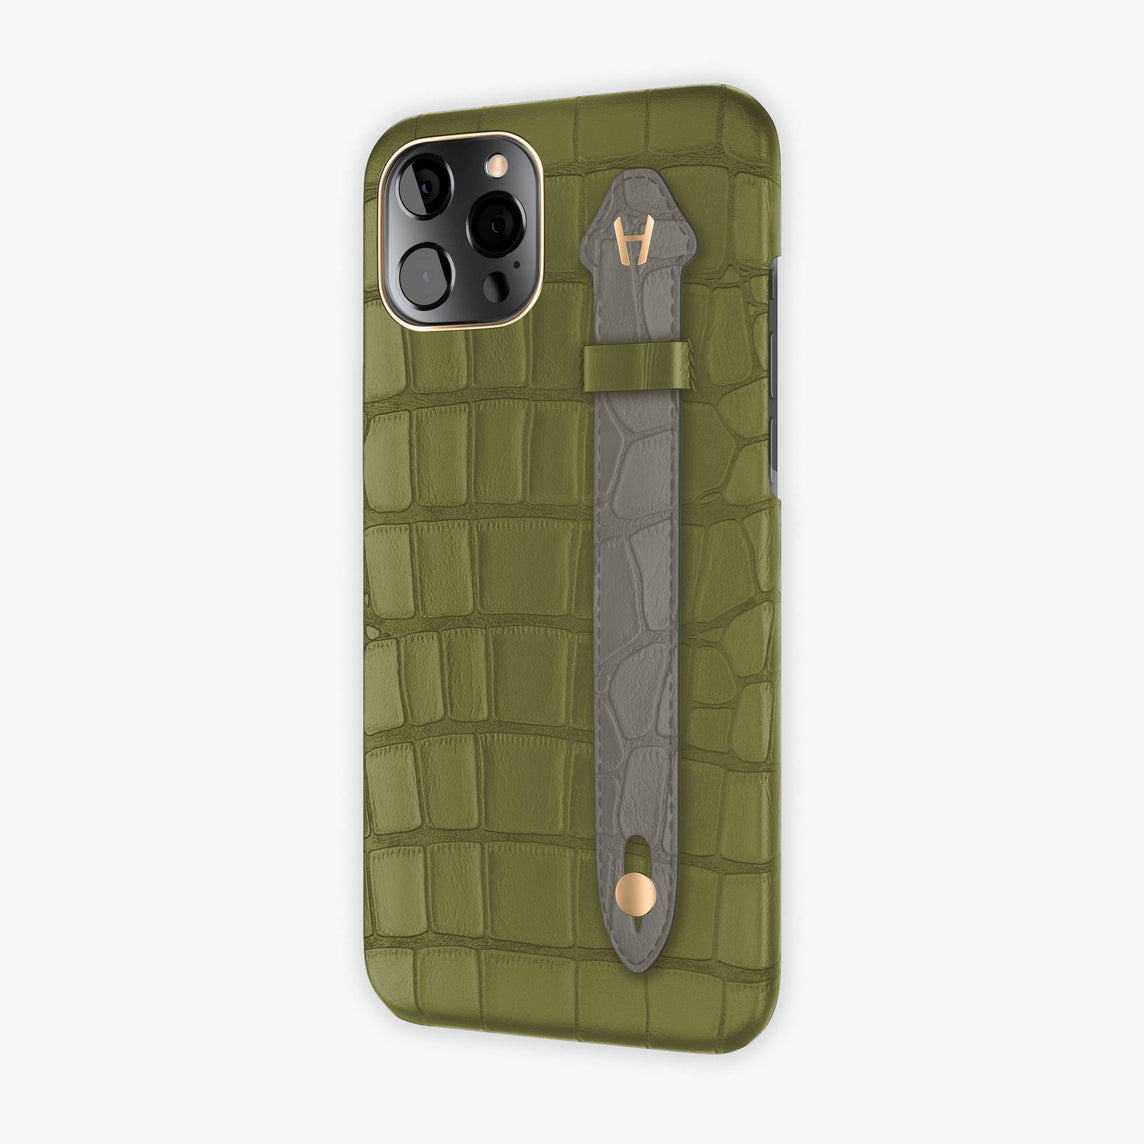 Alligator Side Finger Case iPhone 12 Pro Max | Khaki/Grey - Rose Gold